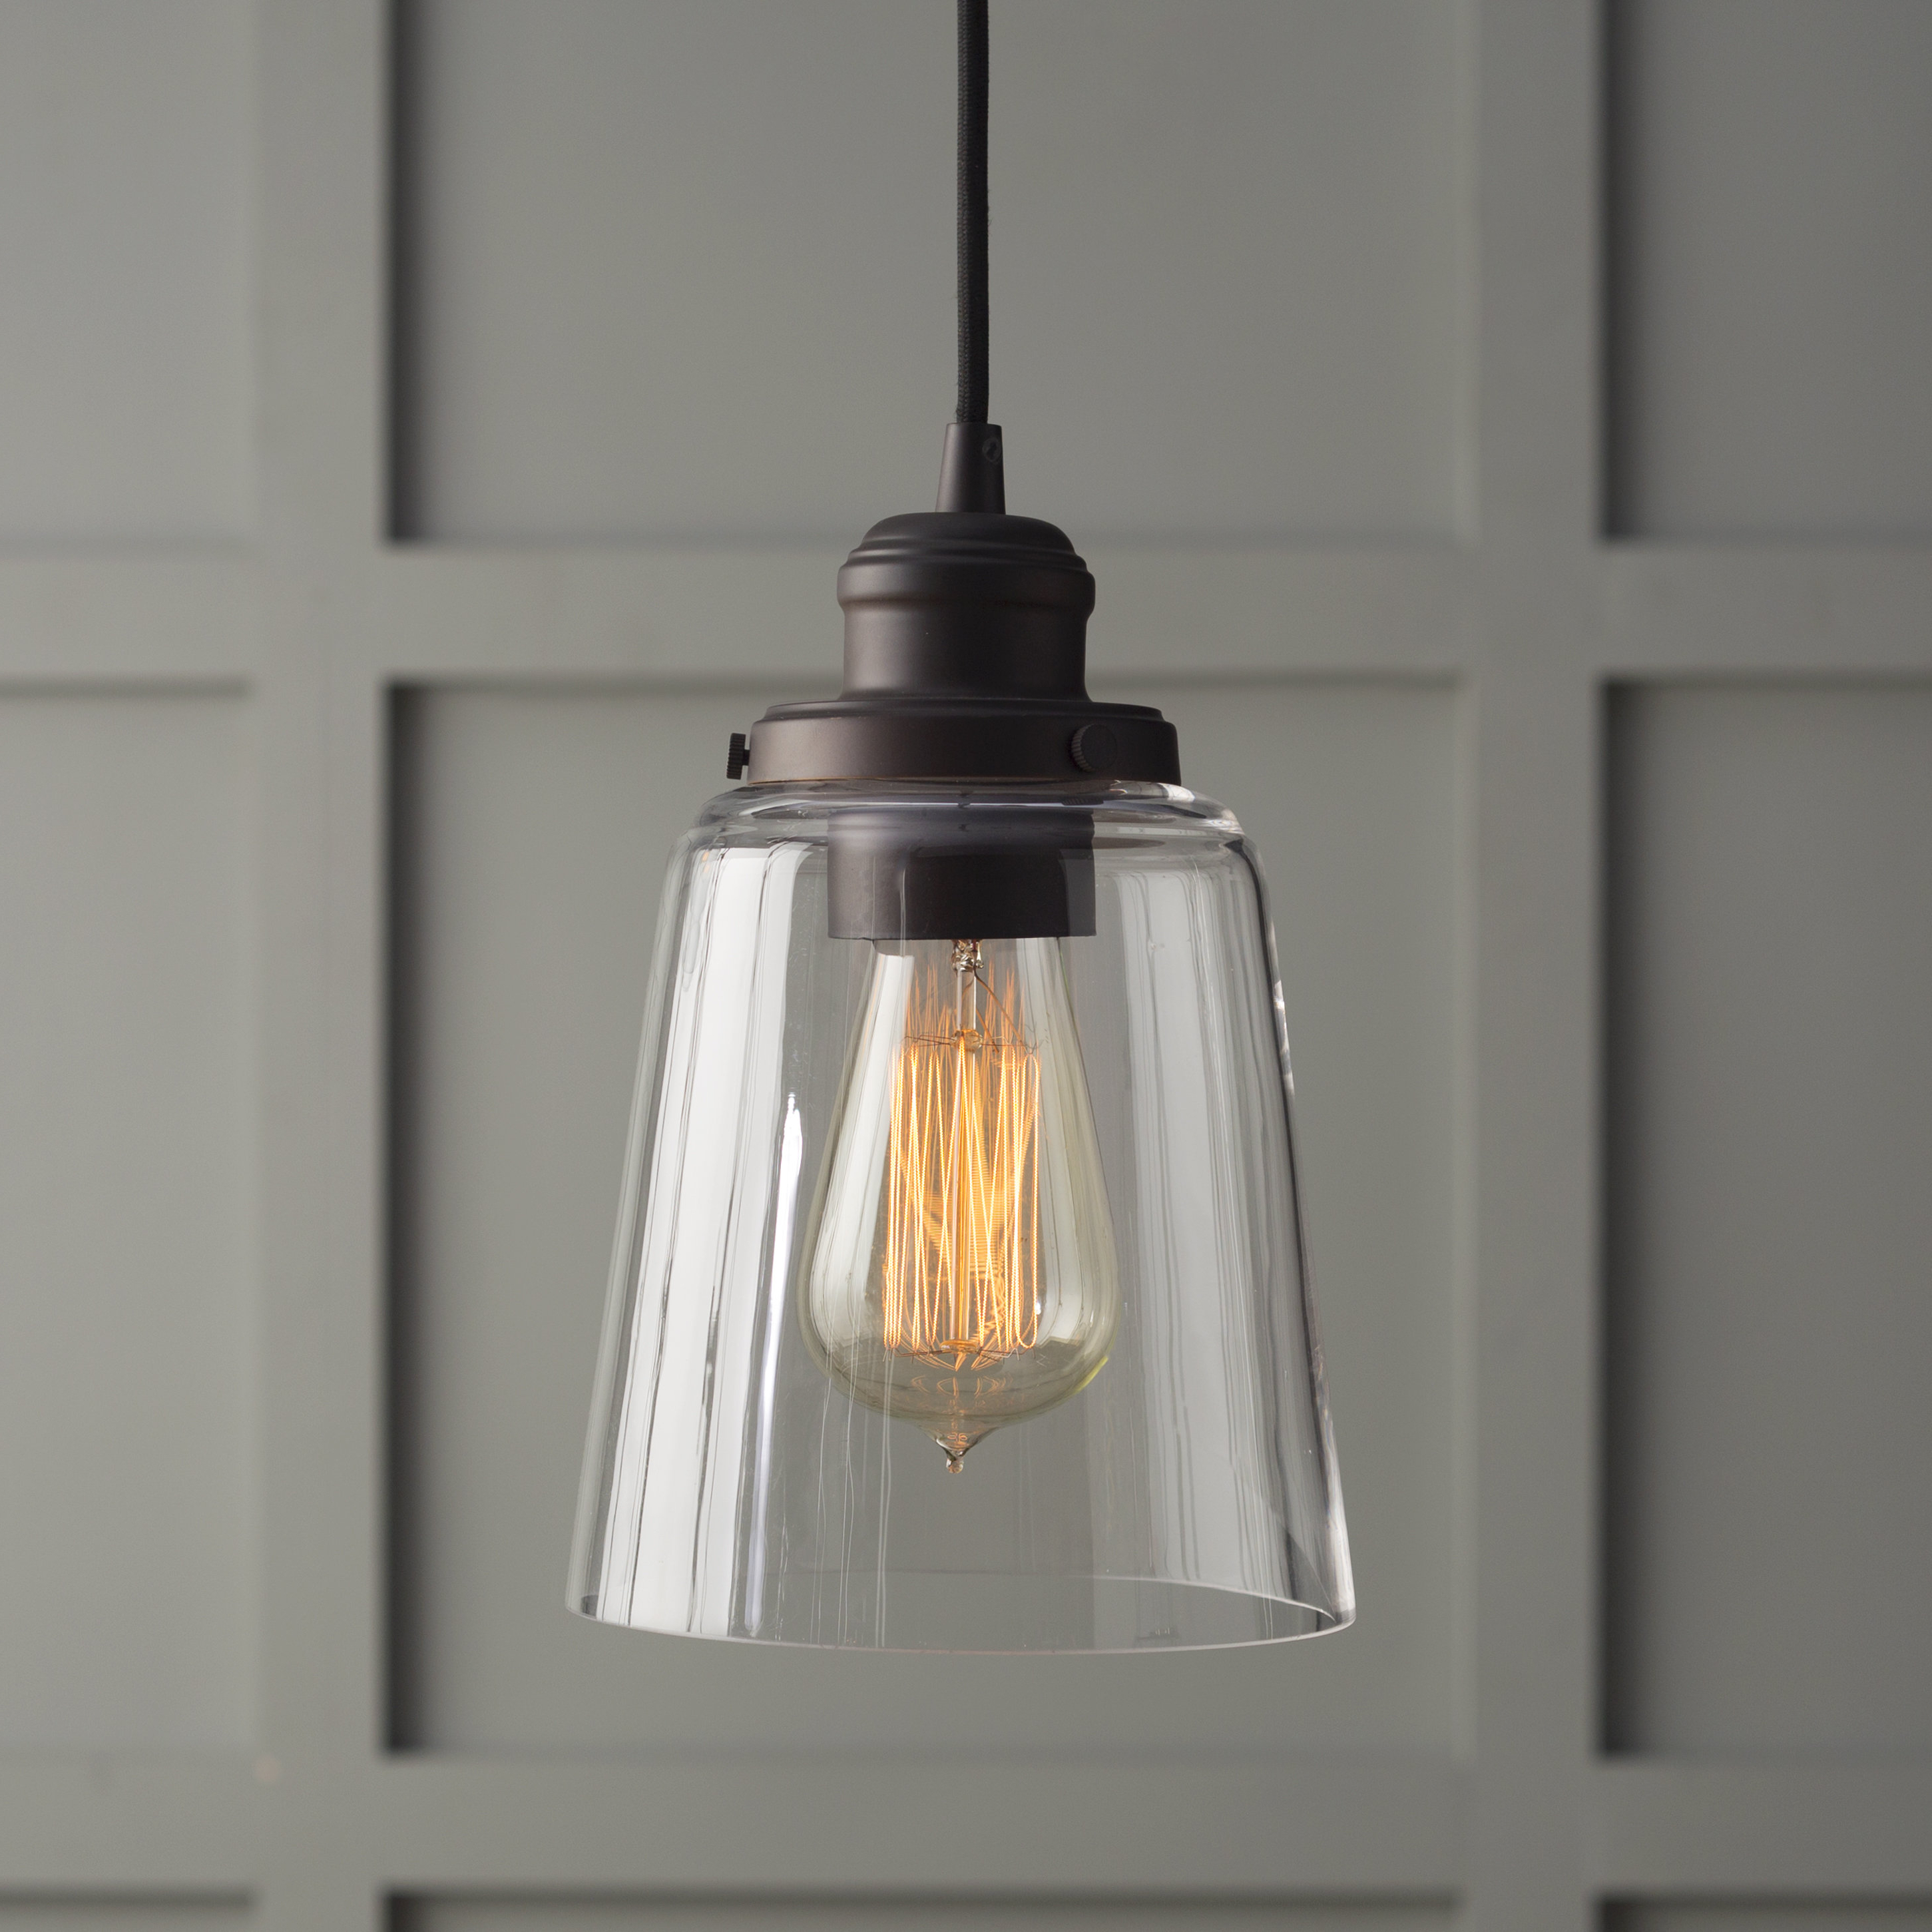 Moyer 1 Light Single Cylinder Pendants Throughout Most Current 1 Light Single Bell Pendant (View 2 of 25)